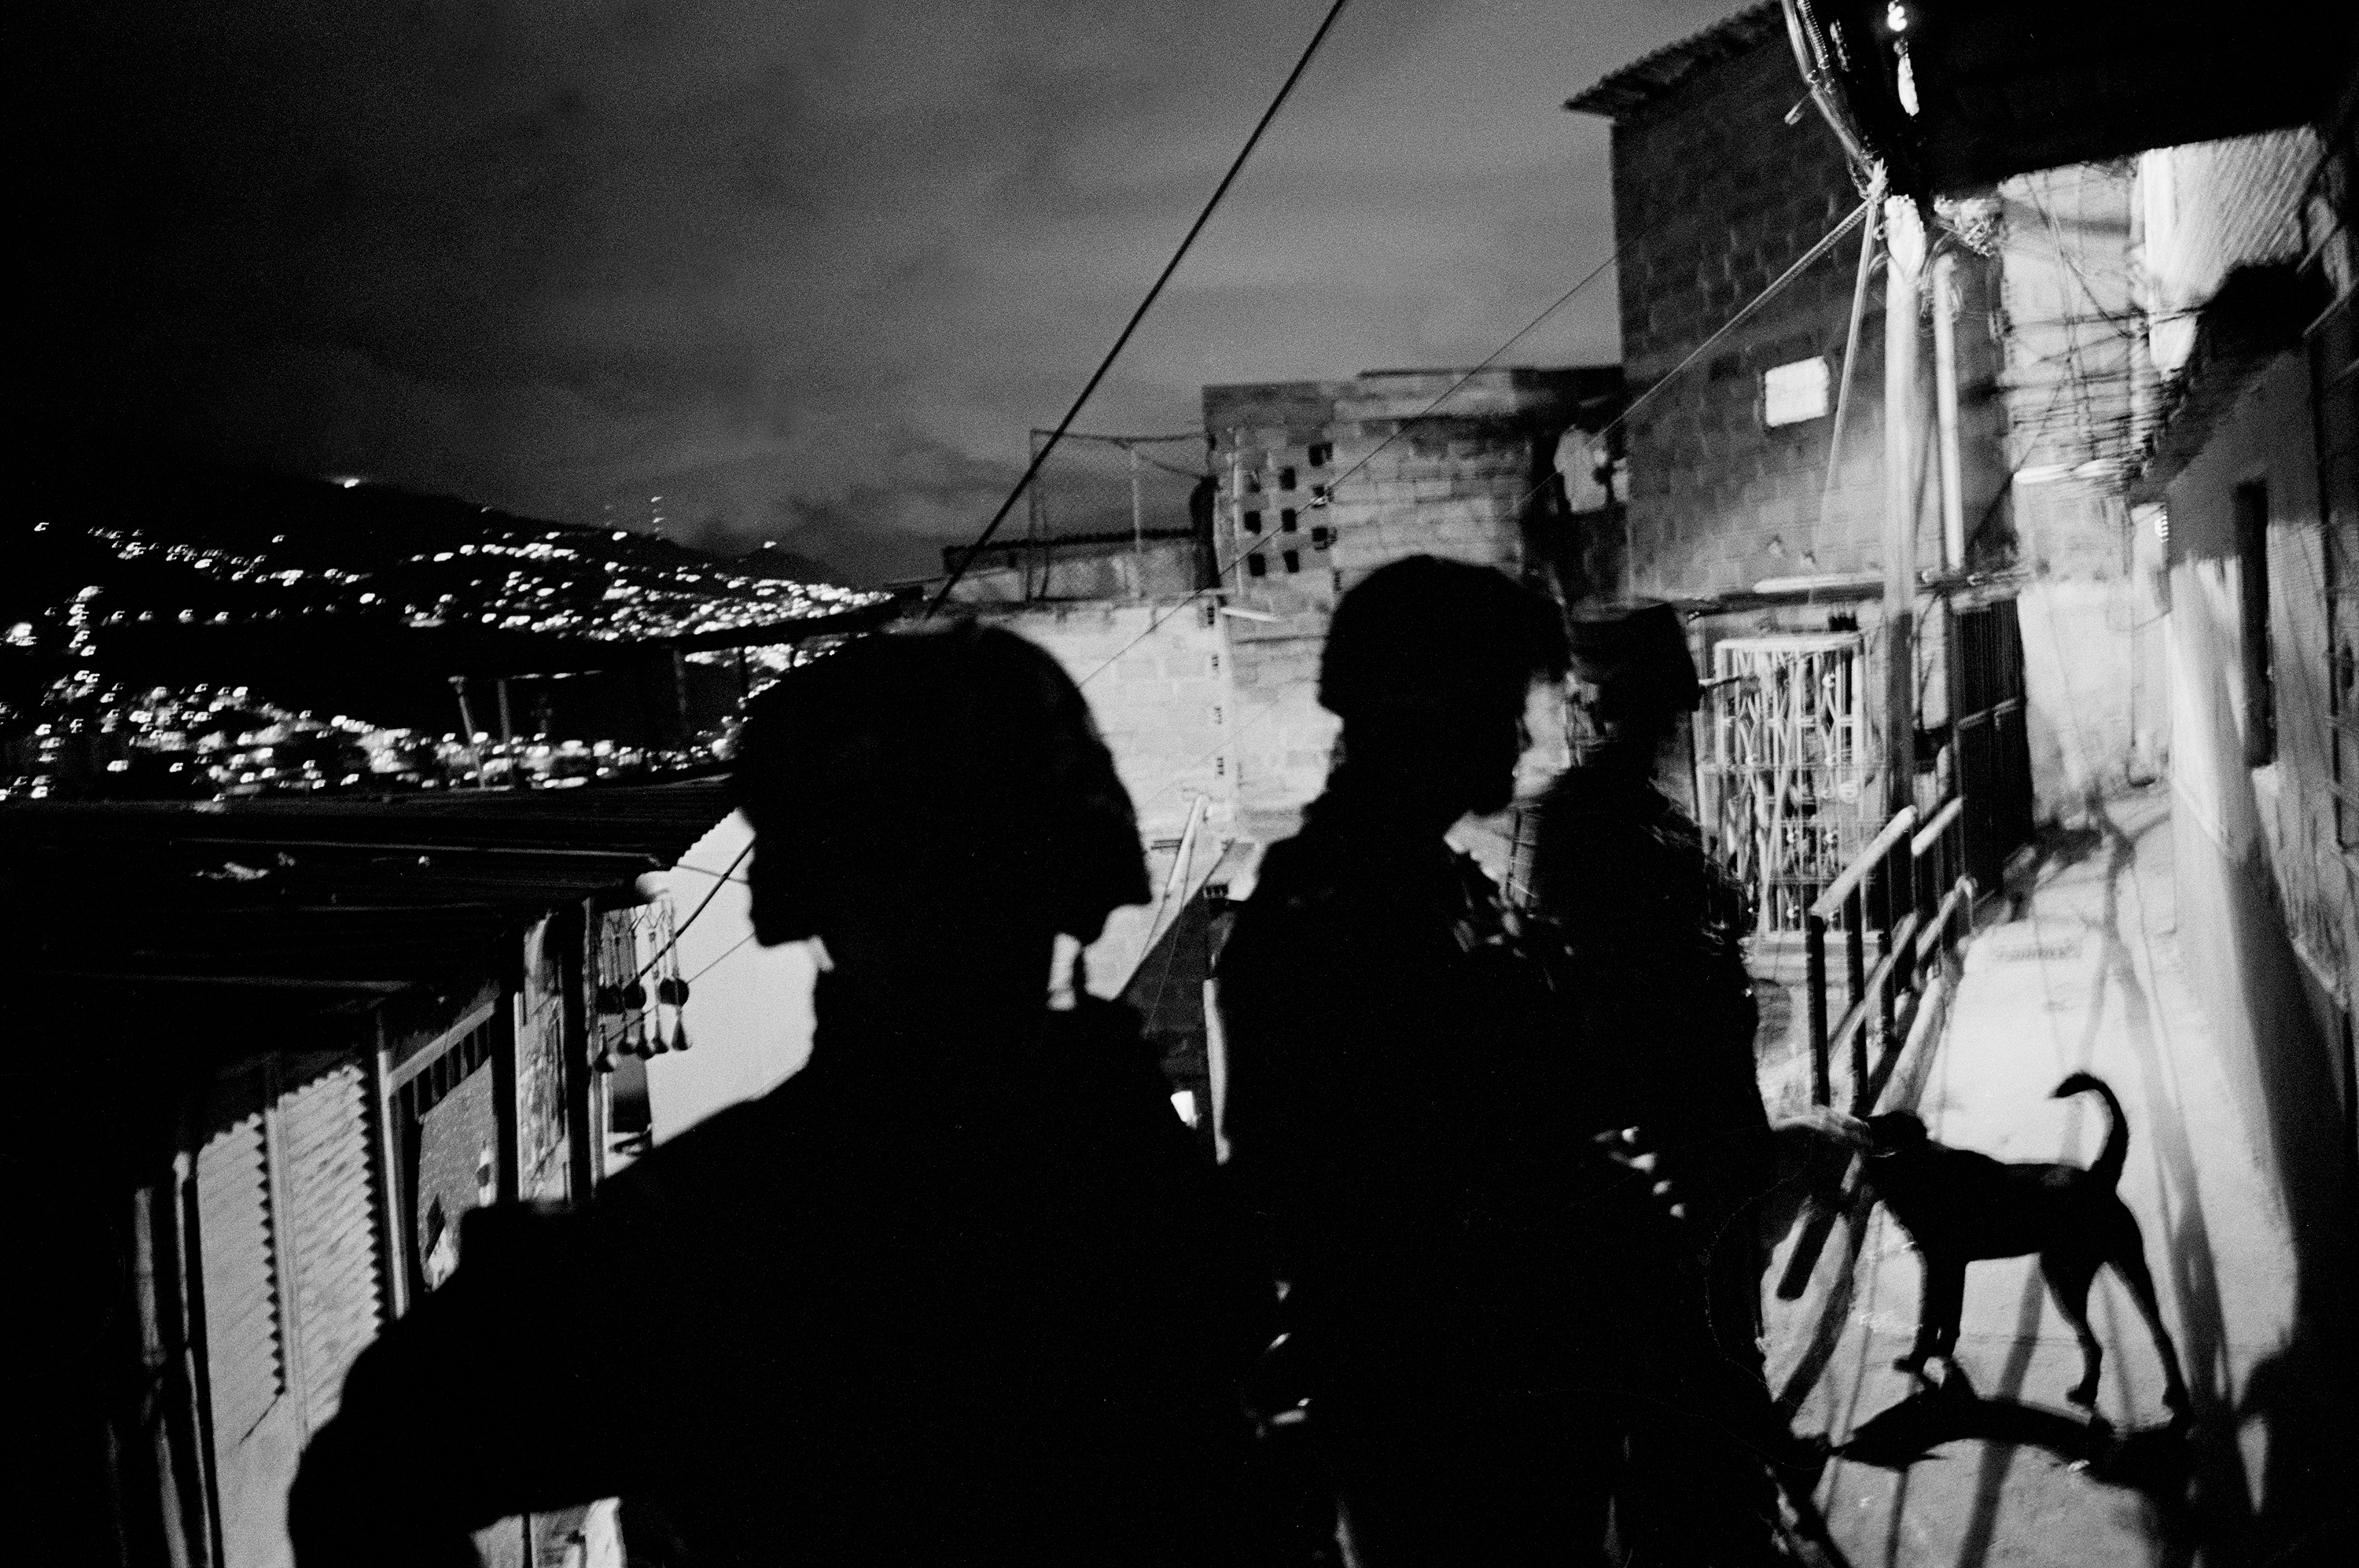 """A group of soldiers patrol the streets of """"La Comuna"""" number 13, a neighborhood with many FARC militants, and a stronghold for the distribution of cocaine, Medellin, Colombia, 2011."""